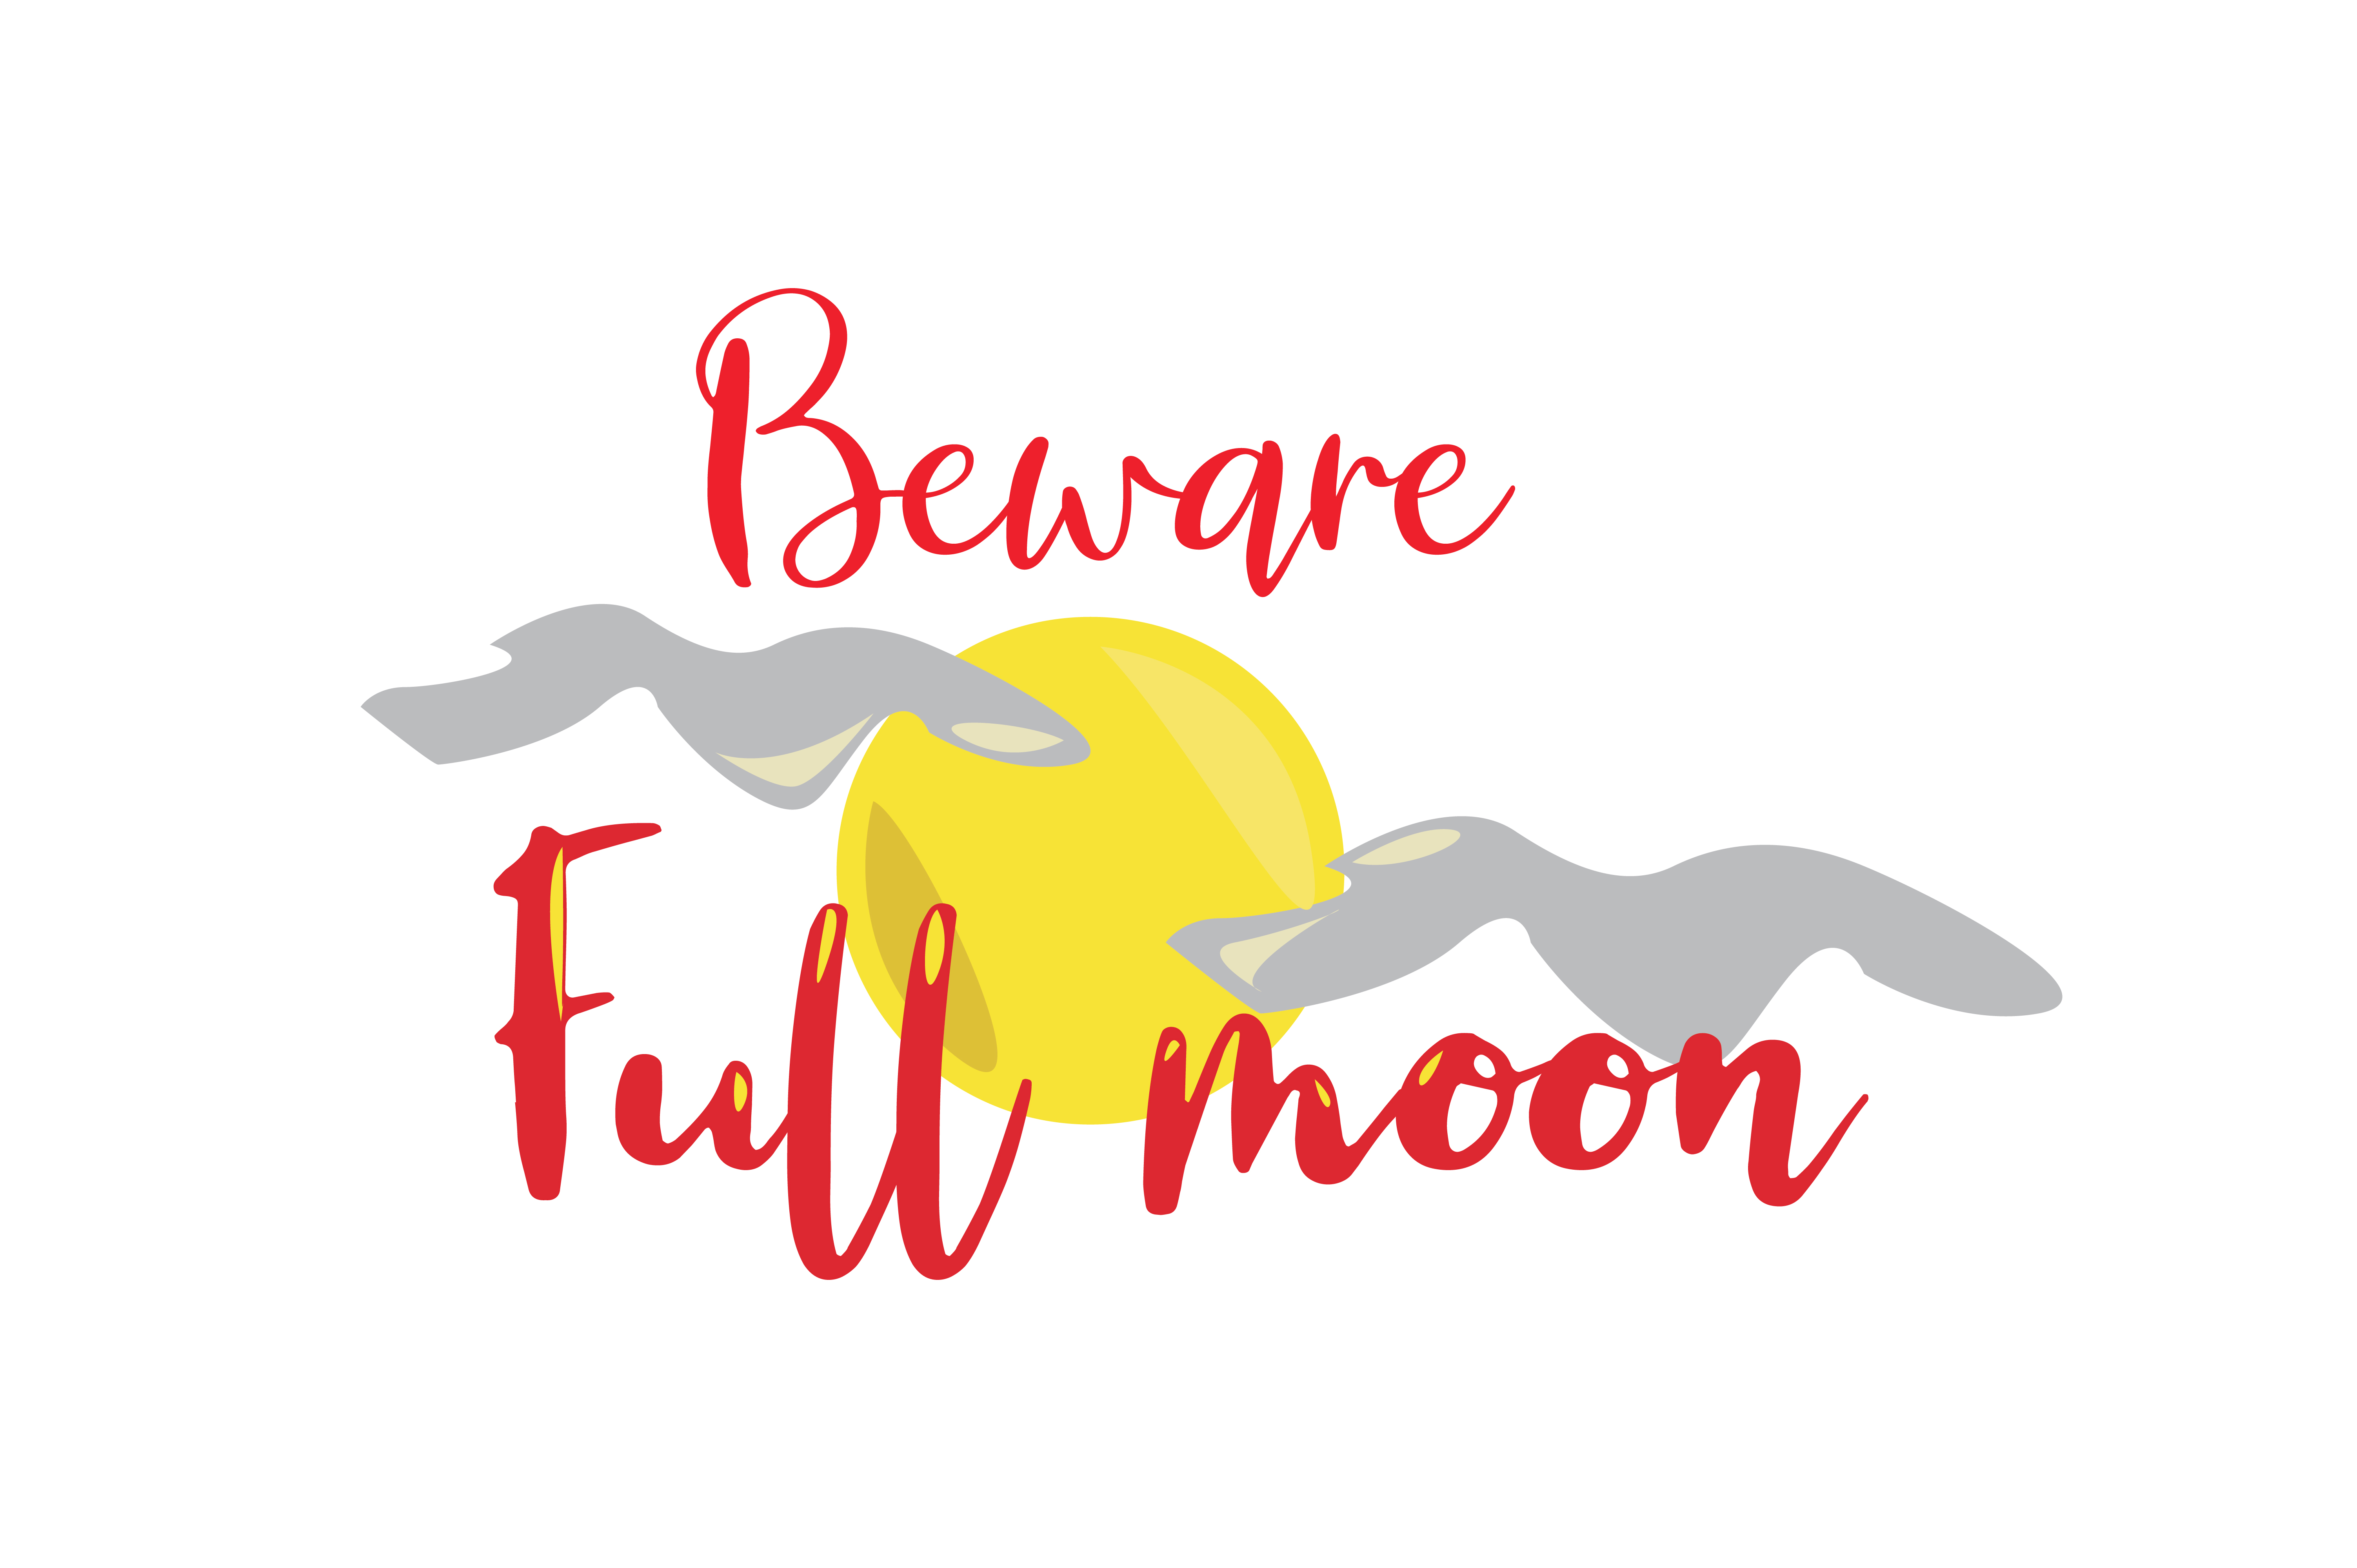 Download Free Beware Full Moon Graphic By Thelucky Creative Fabrica for Cricut Explore, Silhouette and other cutting machines.